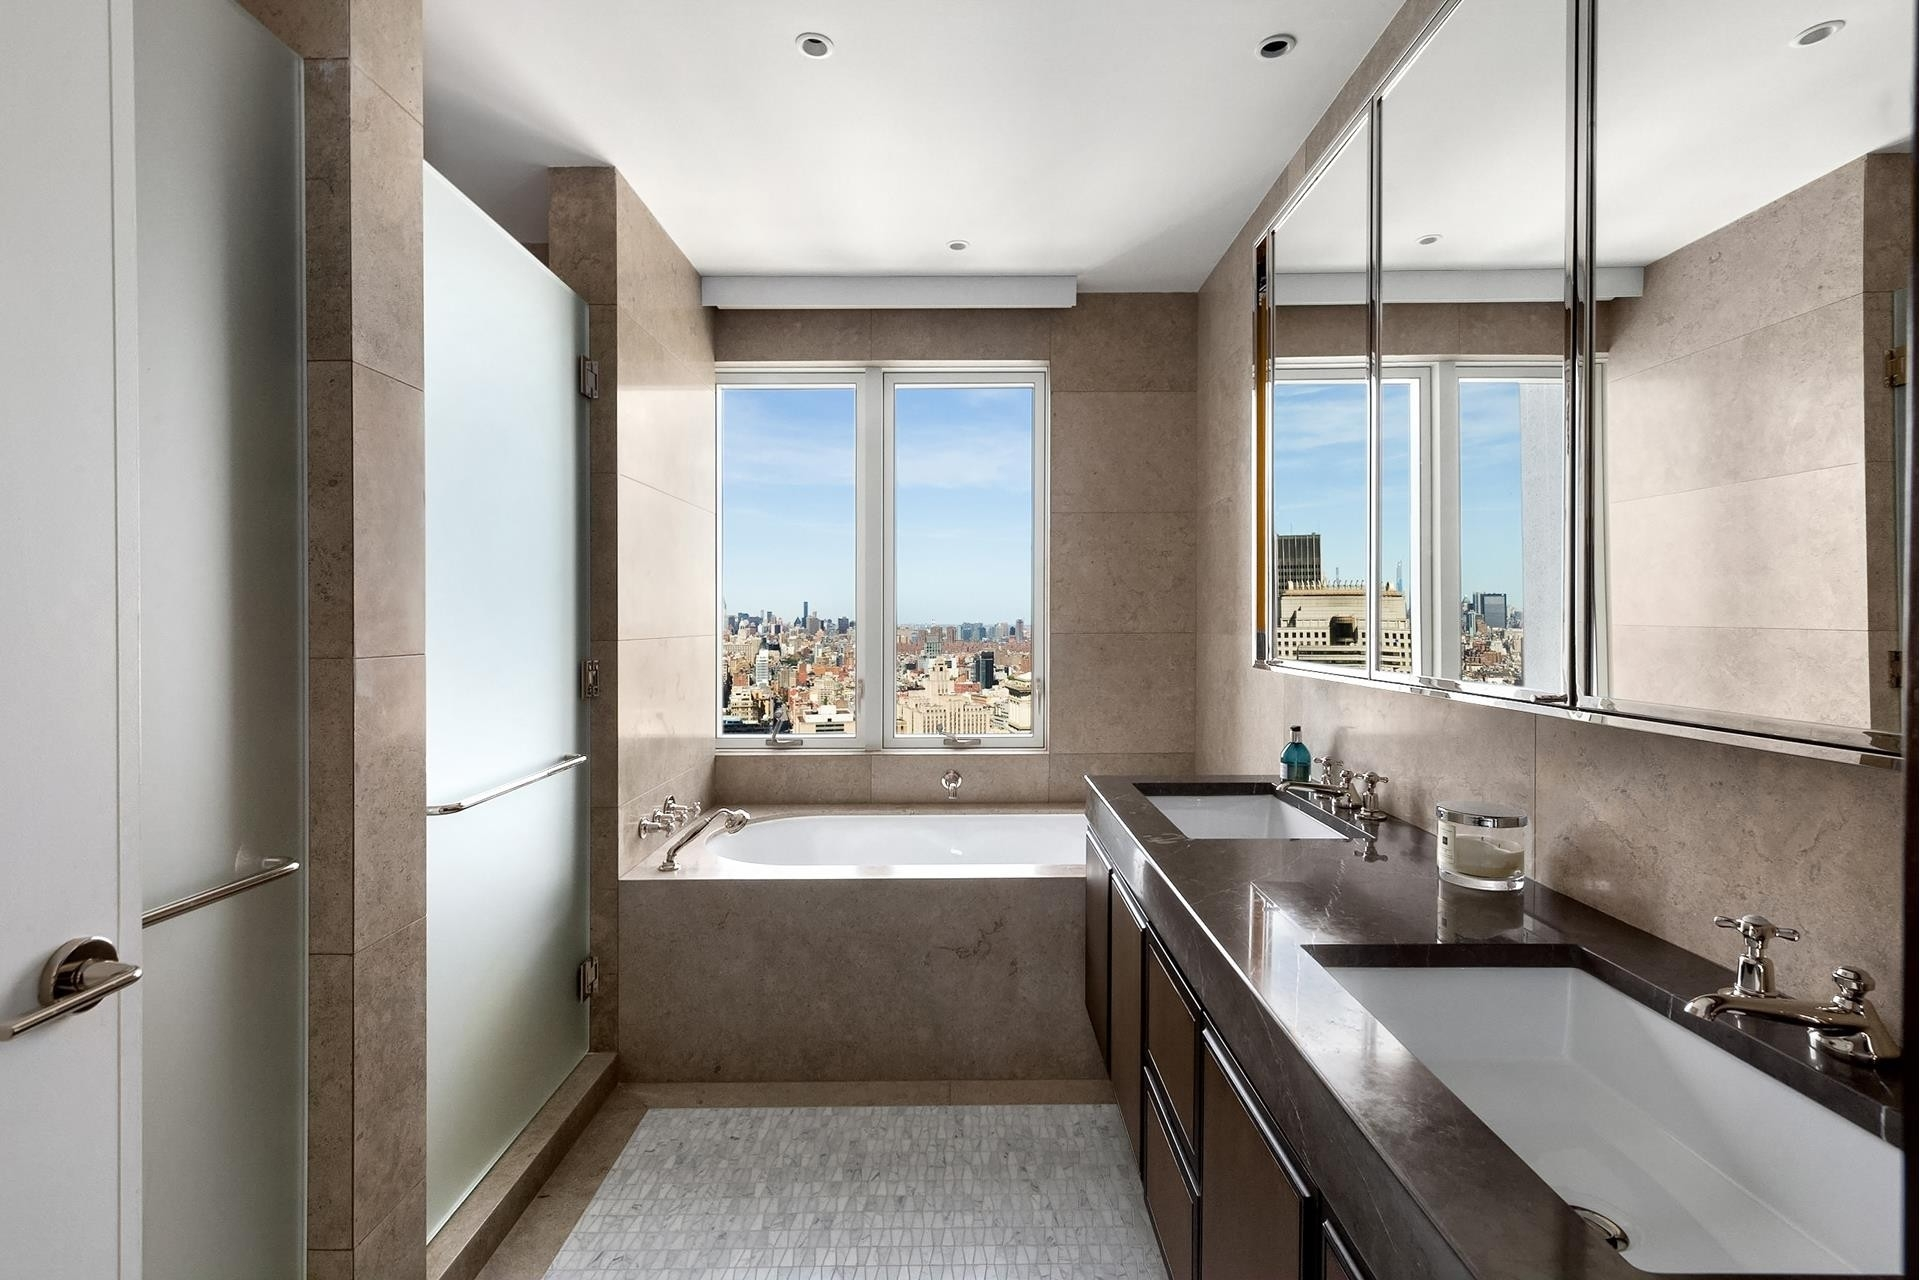 6. Condominiums for Sale at The Beekman, 5 BEEKMAN ST , 43A Financial District, New York, NY 10038